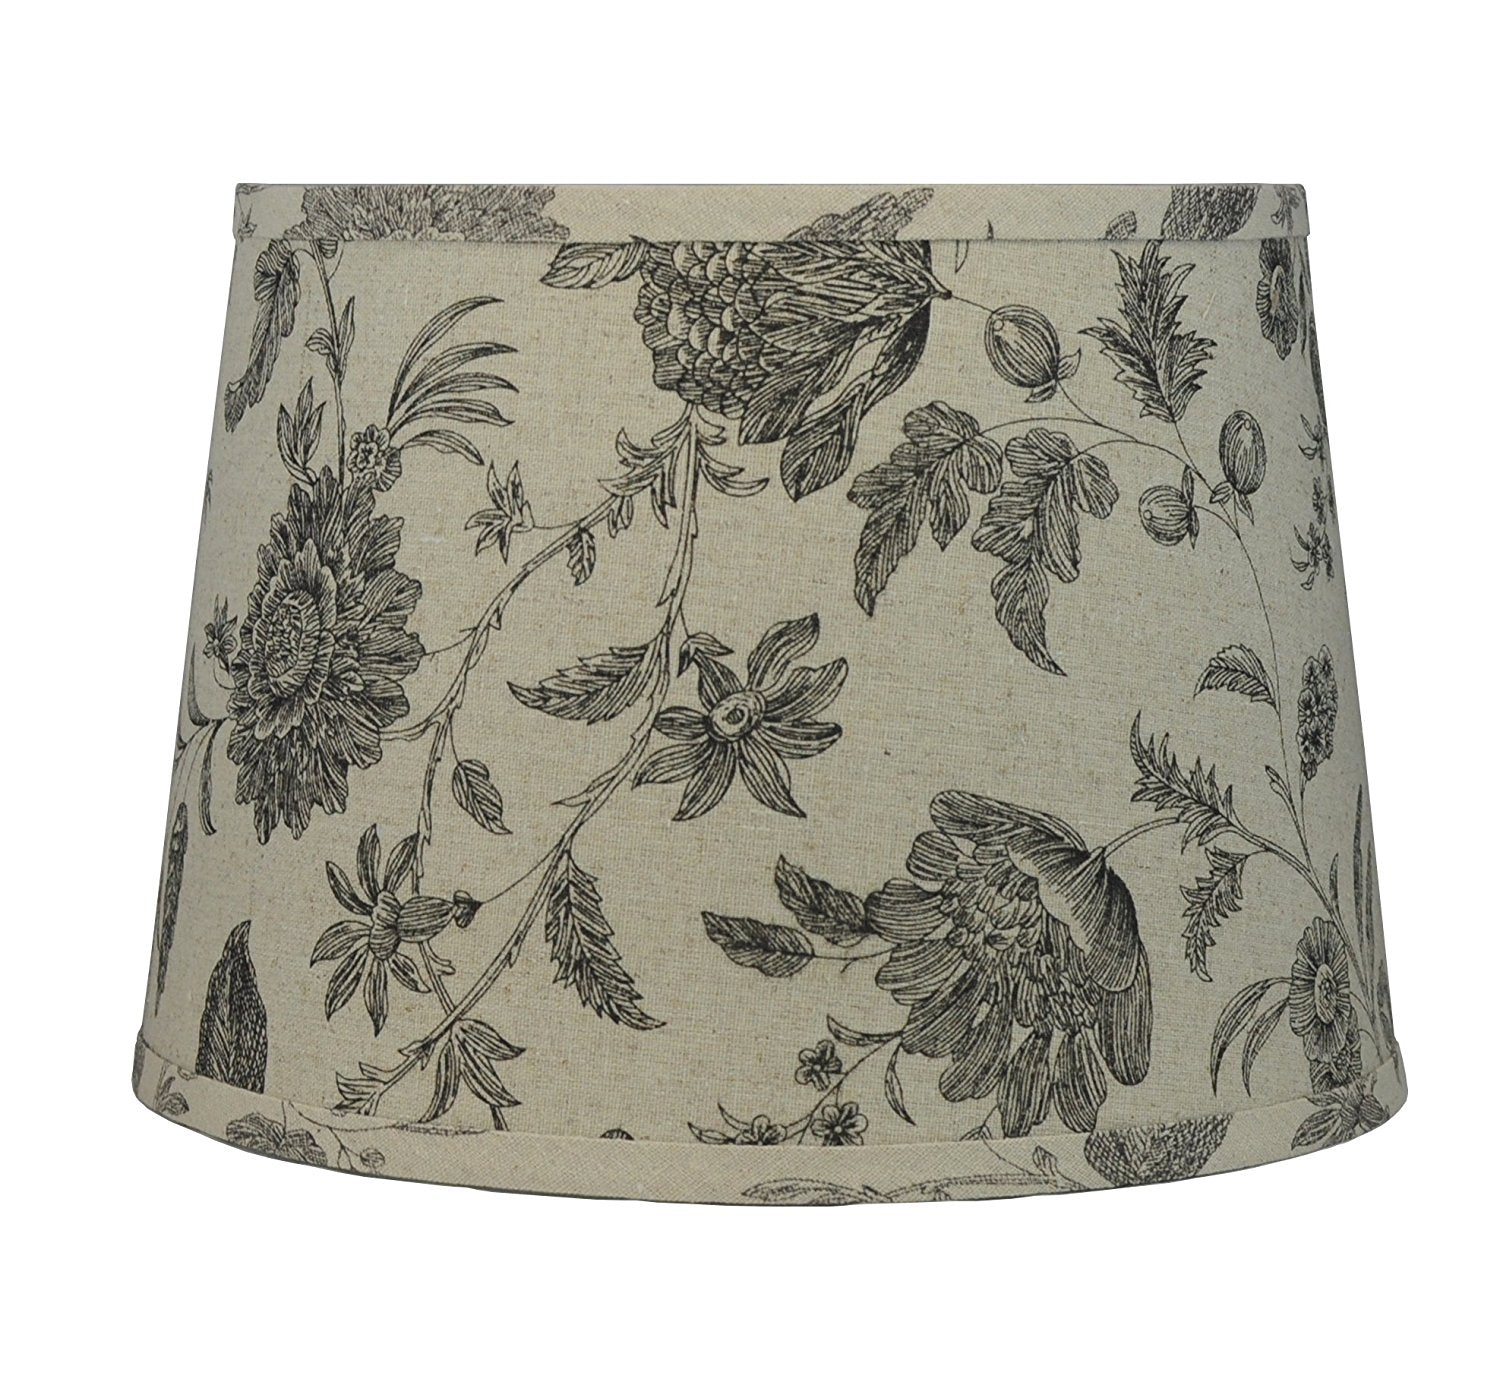 French Drum Lampshade, Natrual Linen With Flowers and Leaves, 12-inch Spider